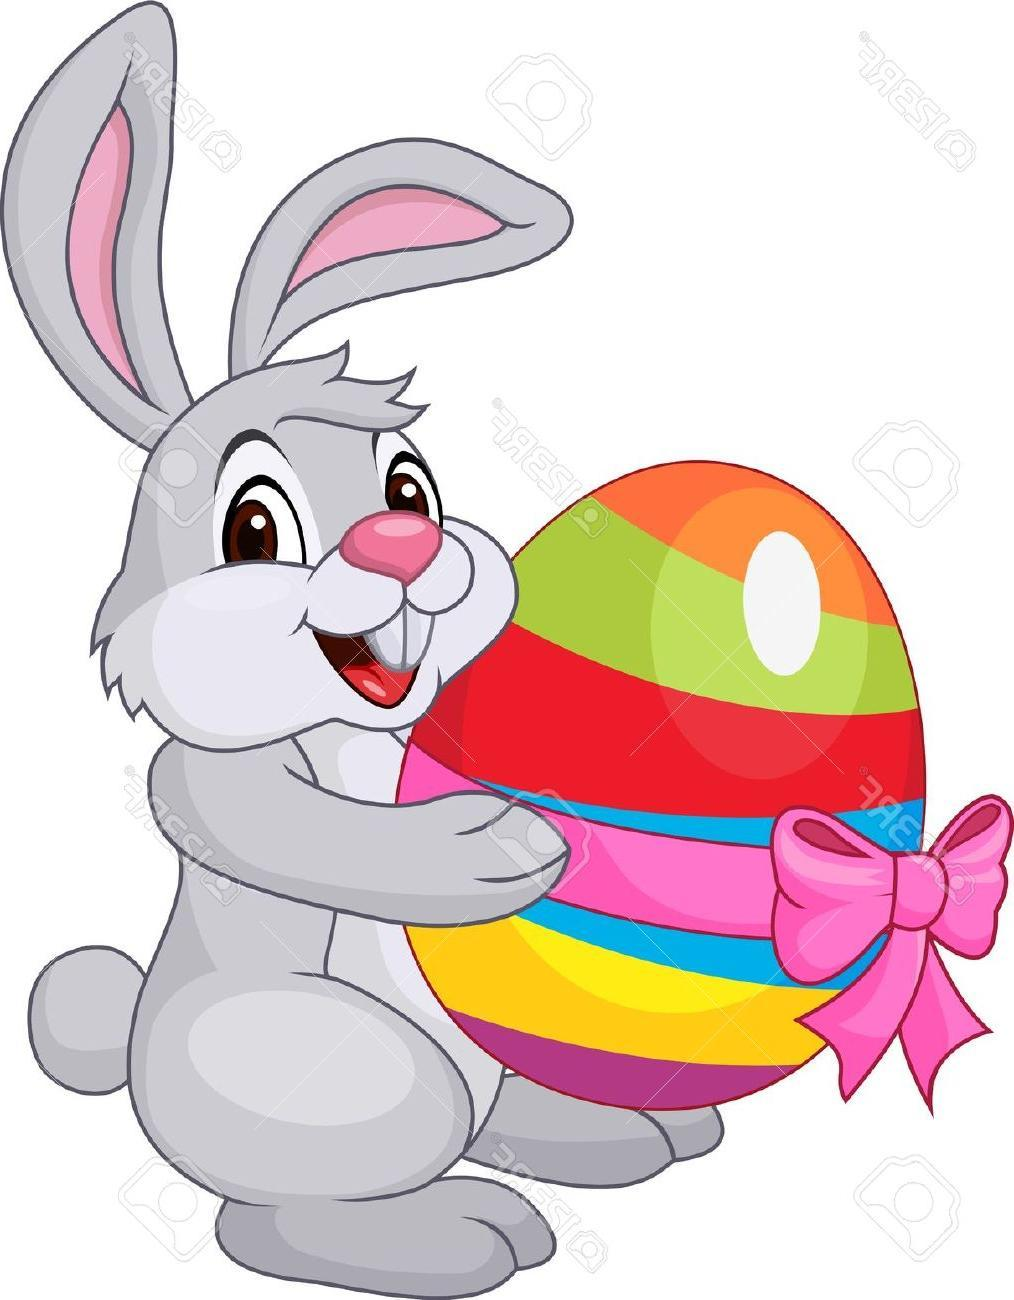 1014x1300 Scary^ Easter Bunny Images Pictures, Clipart, Cartoon Drawing